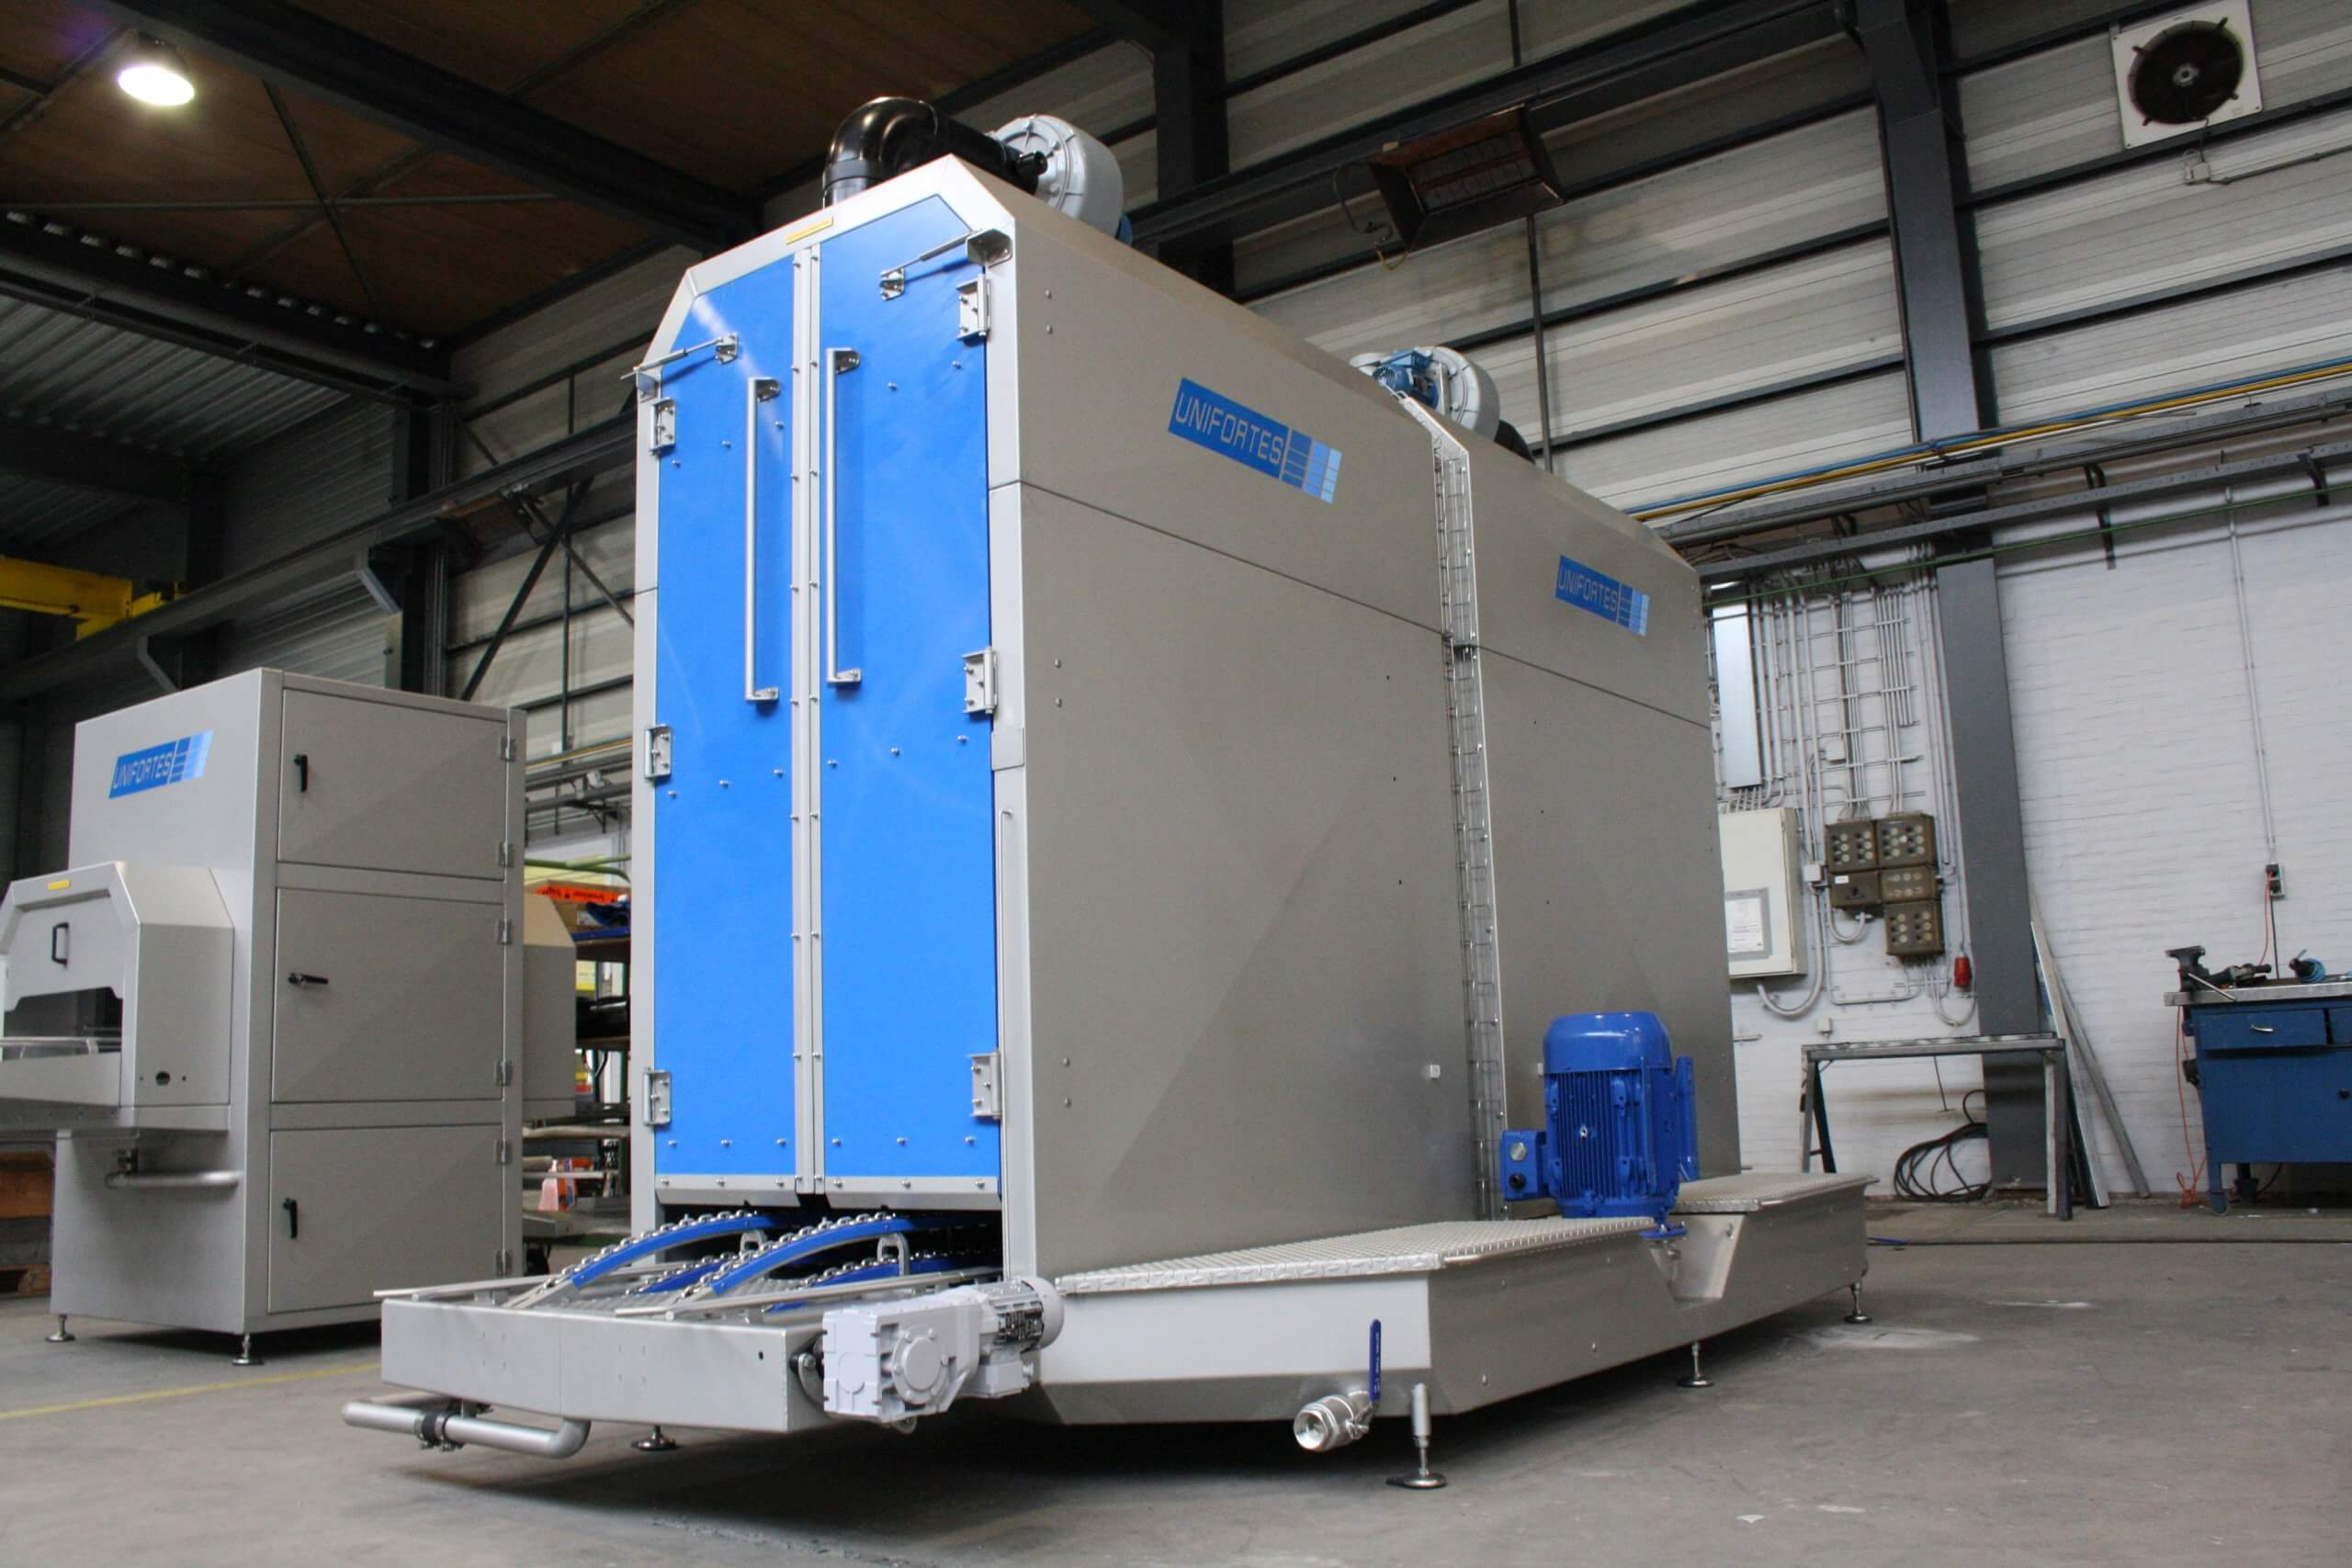 Industrial washer for cleaning trolleys